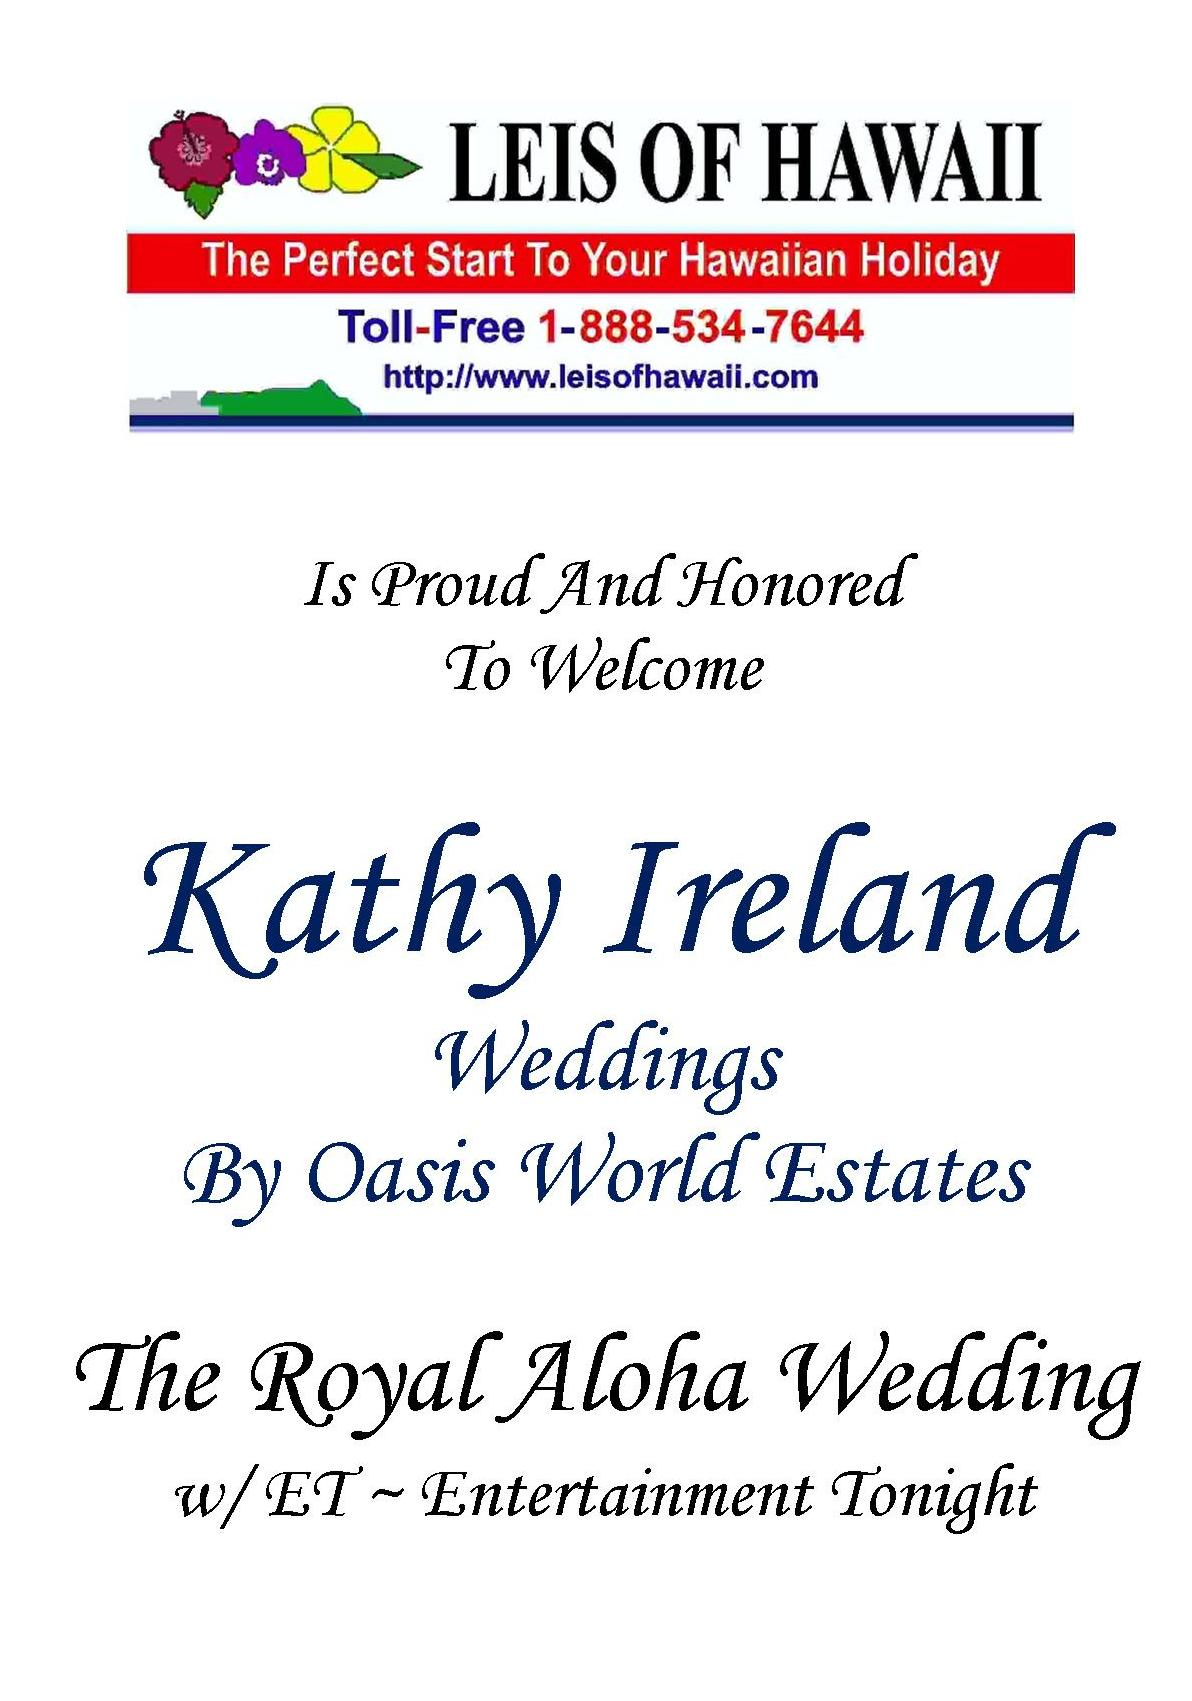 Leis Of Hawaii Is Proud And Honored To Welcome - Kathy Ireland Weddings By Oasis World Estate - The Royal Aloha Wedding - August 3, 2011